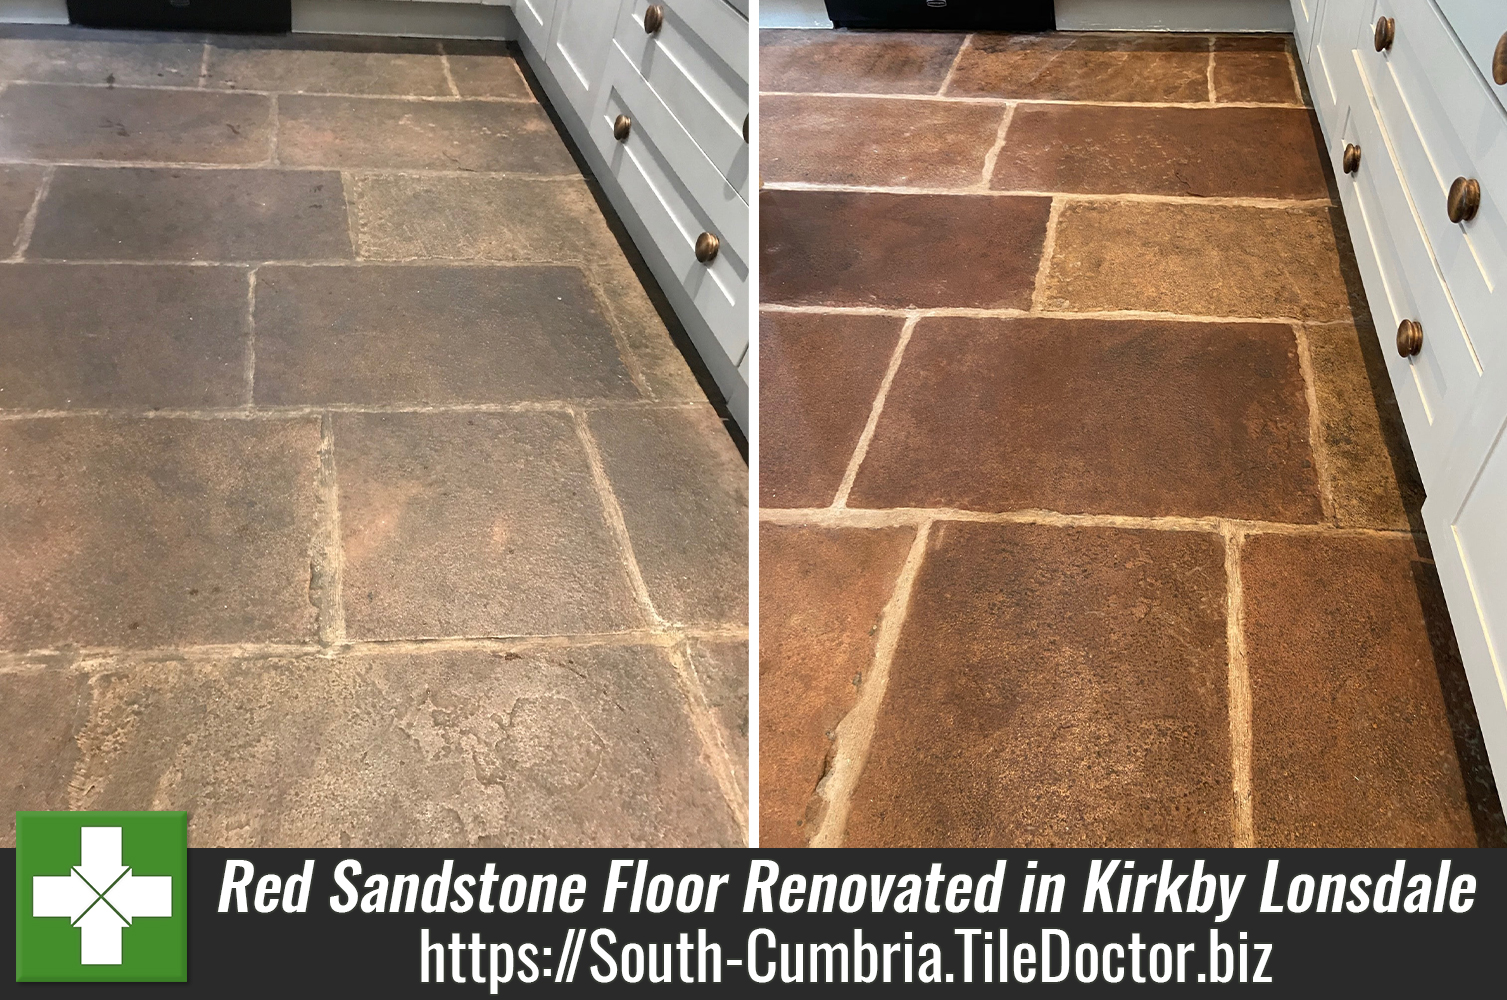 Red Sandstone Kitchen Flagstones Renovated in Kirkby Lonsdale